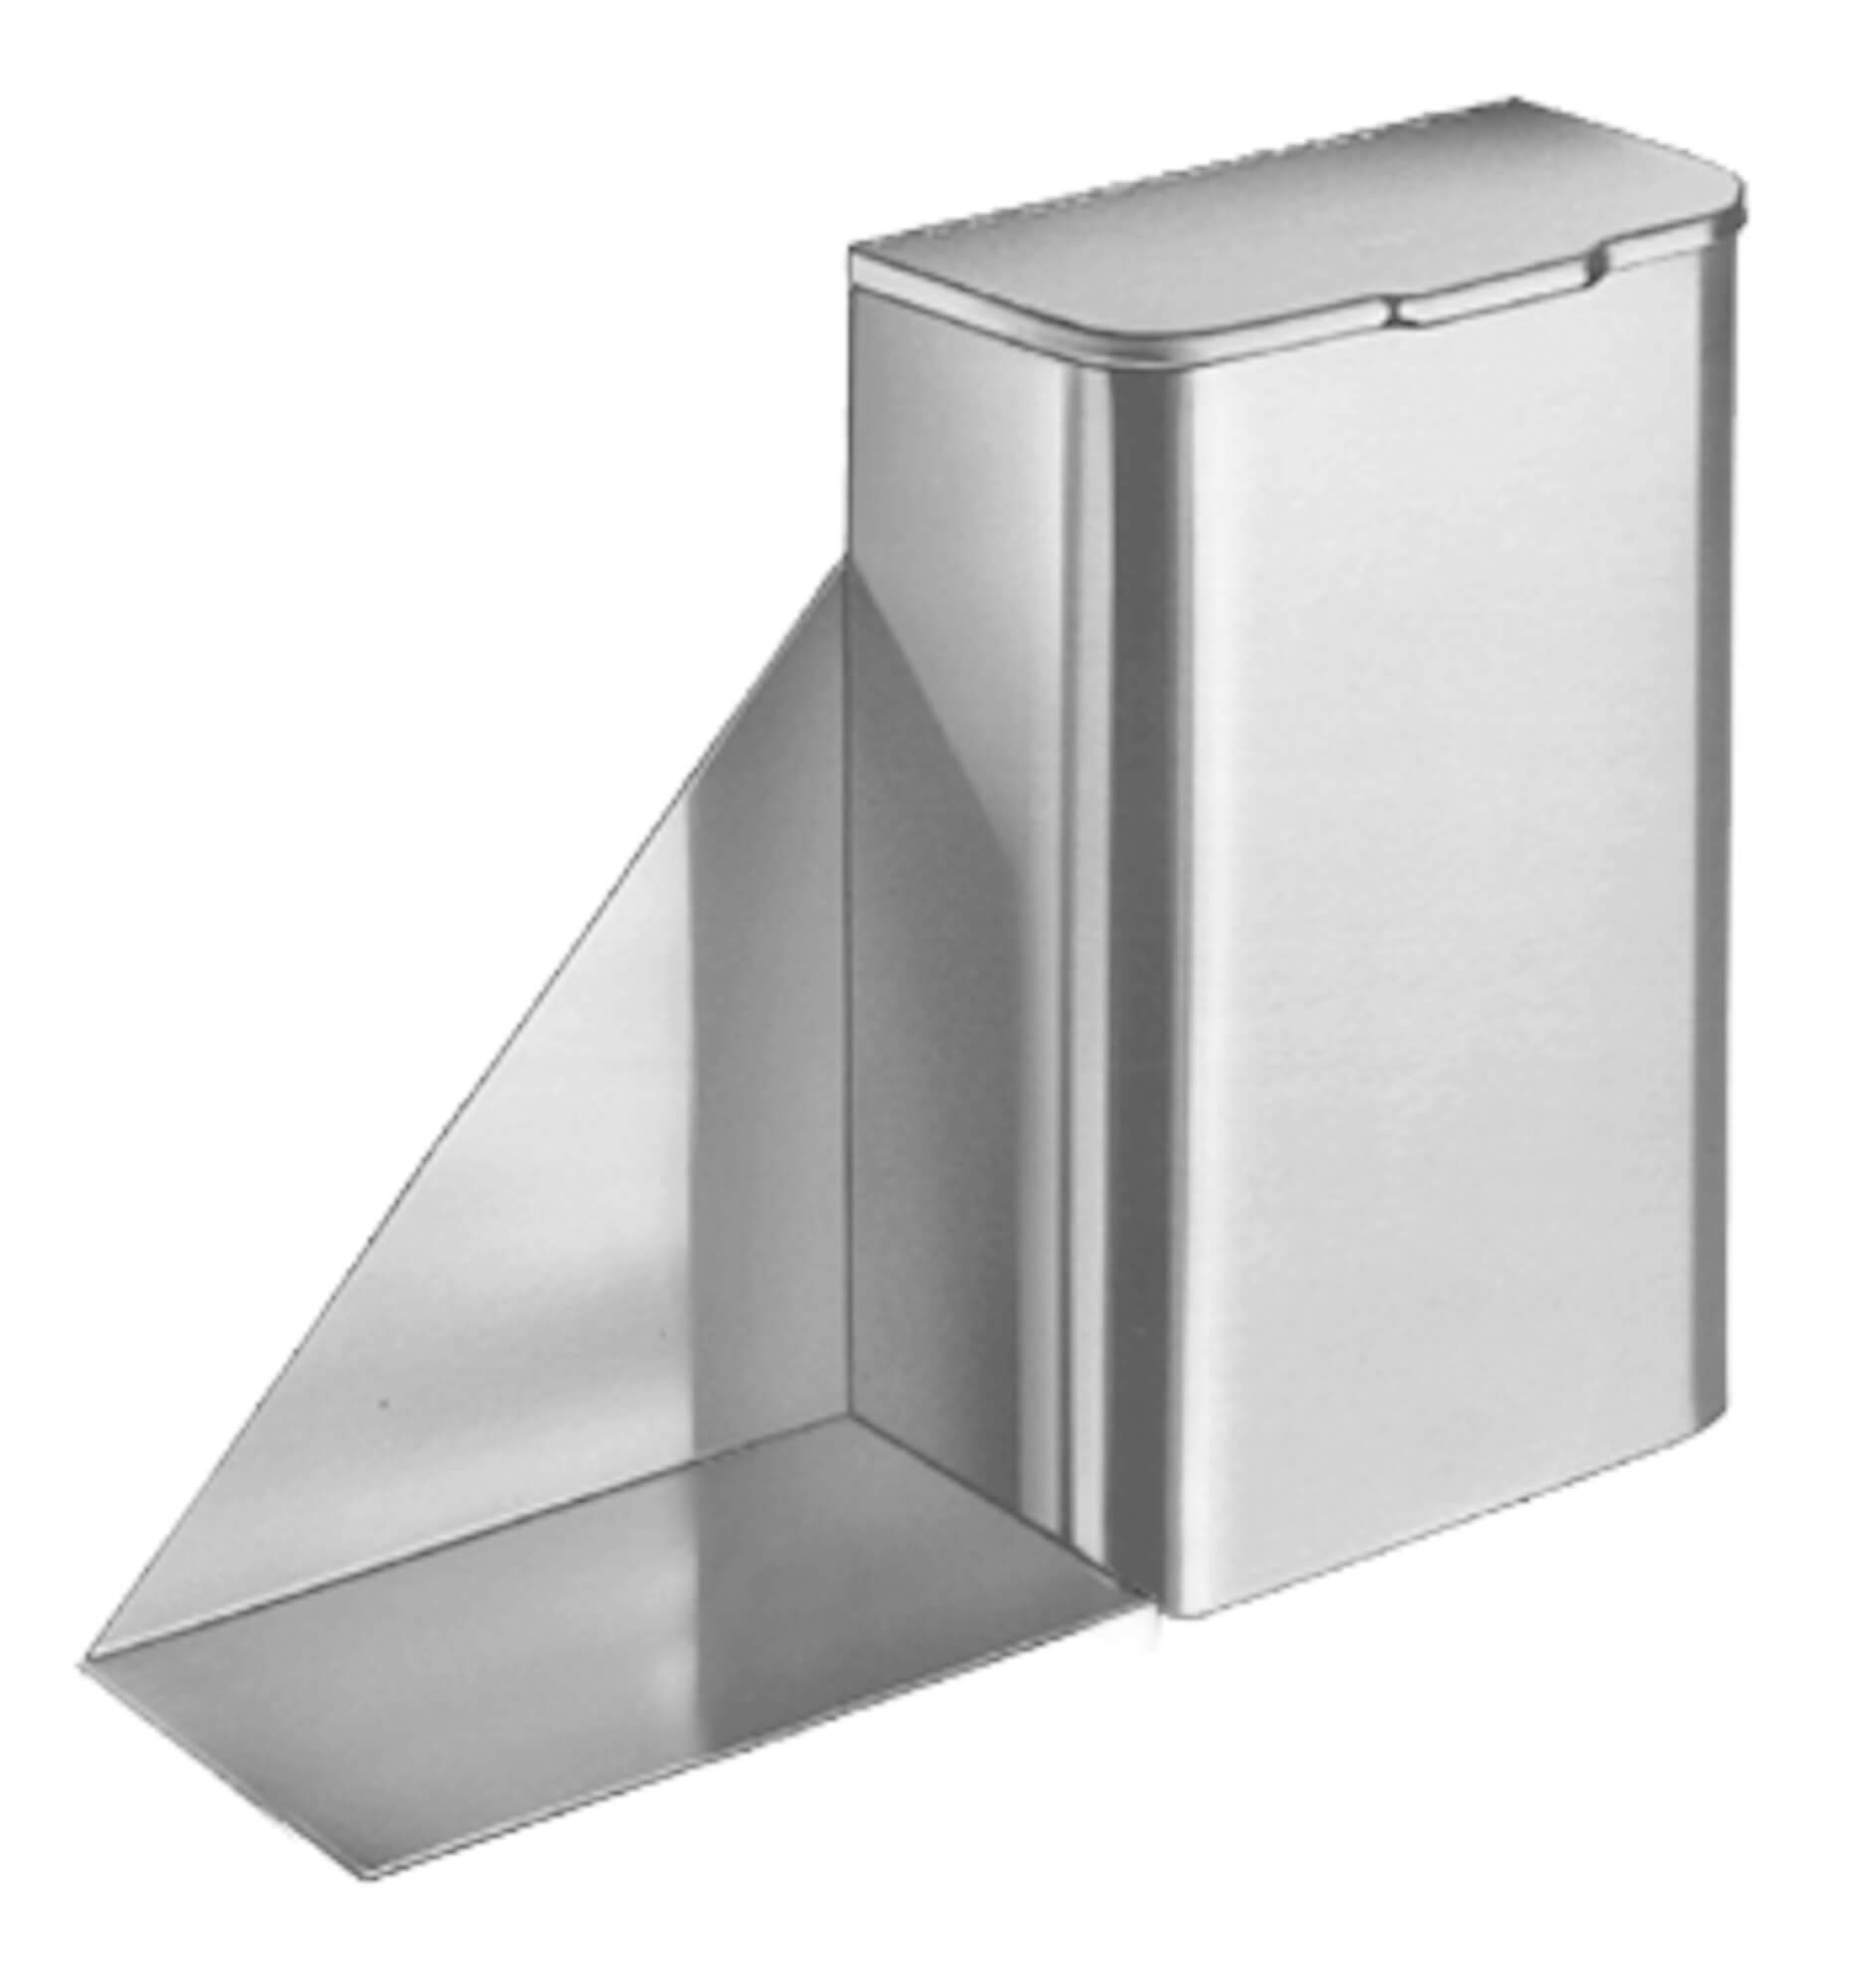 Napkin Disposal and Shelf - Surface Mounted